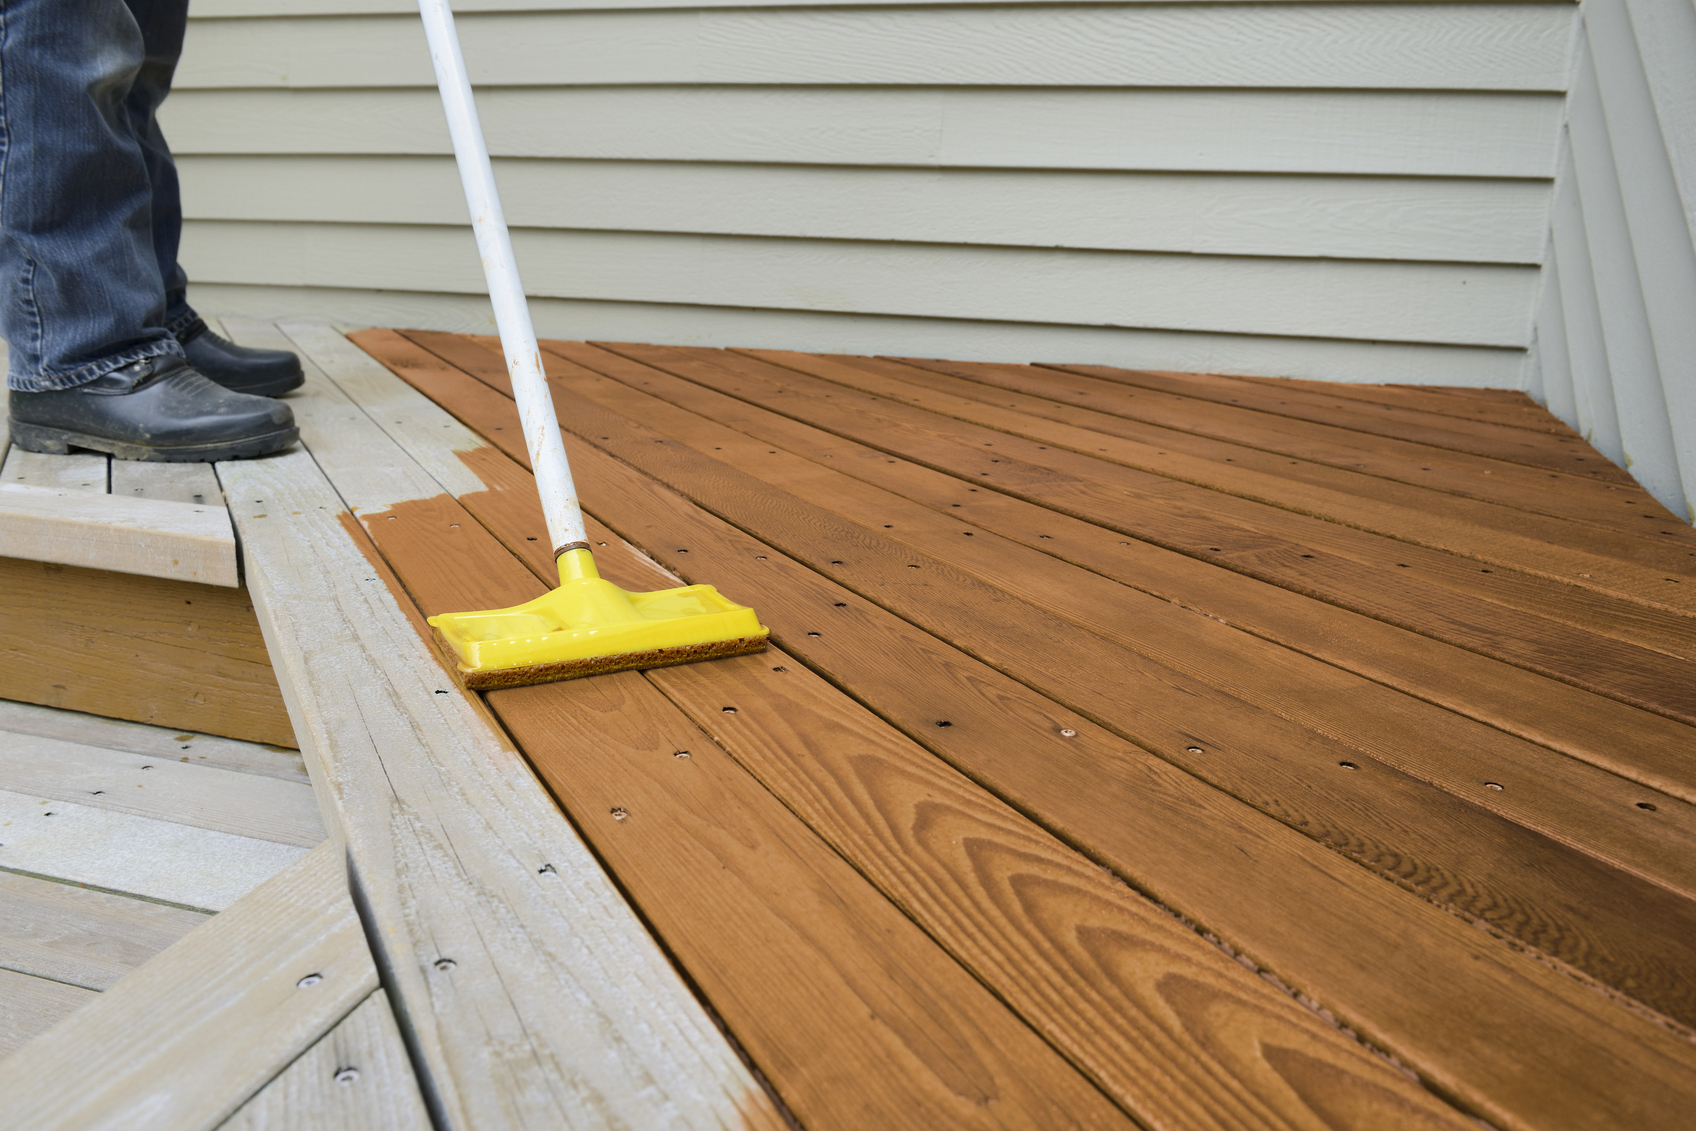 10 Best Rated Deck Stains Lovetoknow pertaining to size 1696 X 1131